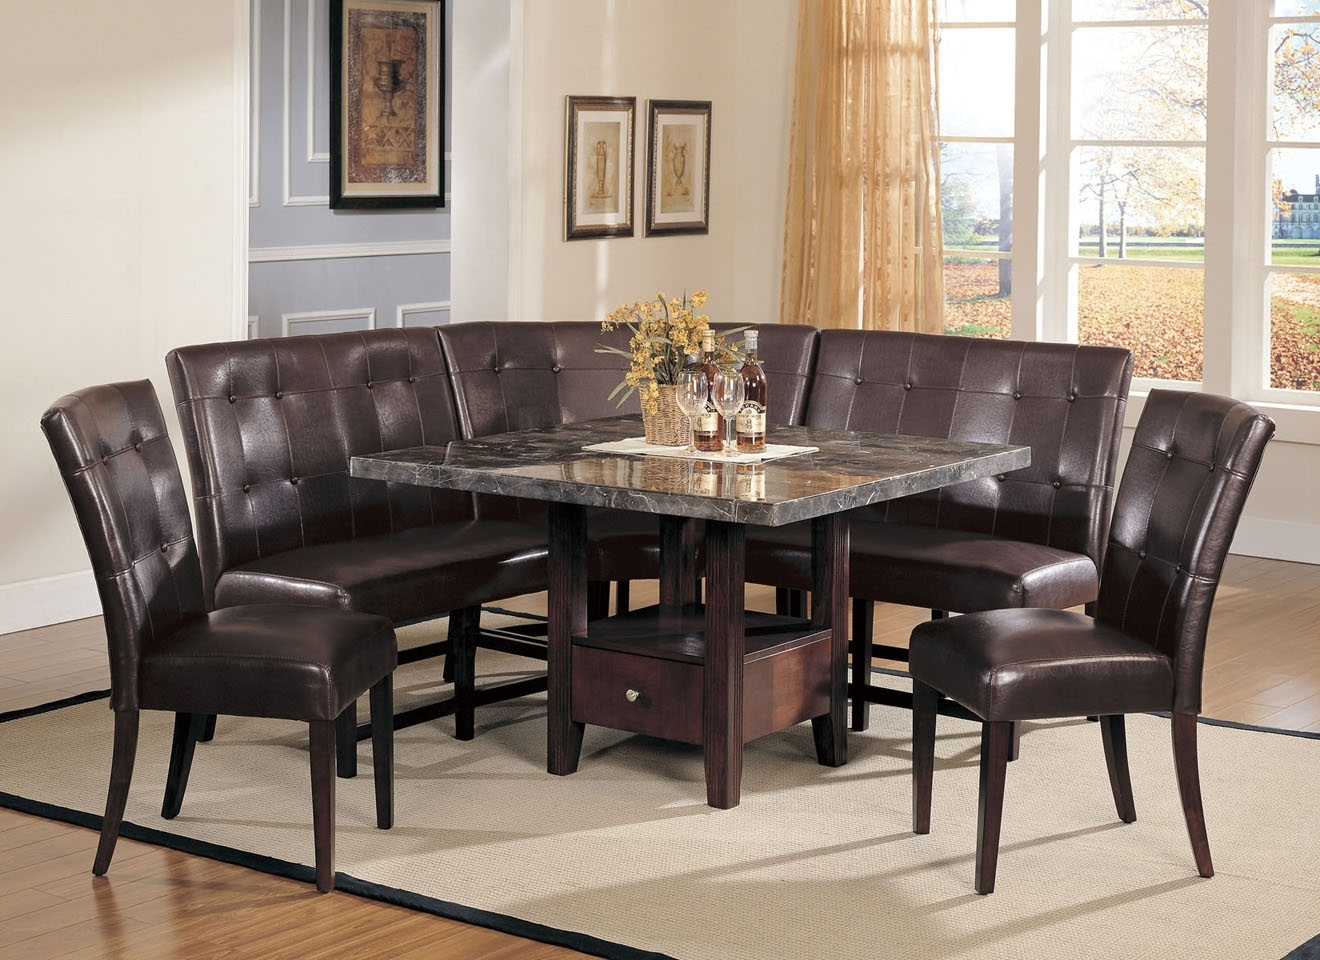 Small Dining Tables And Bench Sets Regarding Current Contemporary Formal Dining Room Sets Dining Table Set With Bench (View 19 of 25)